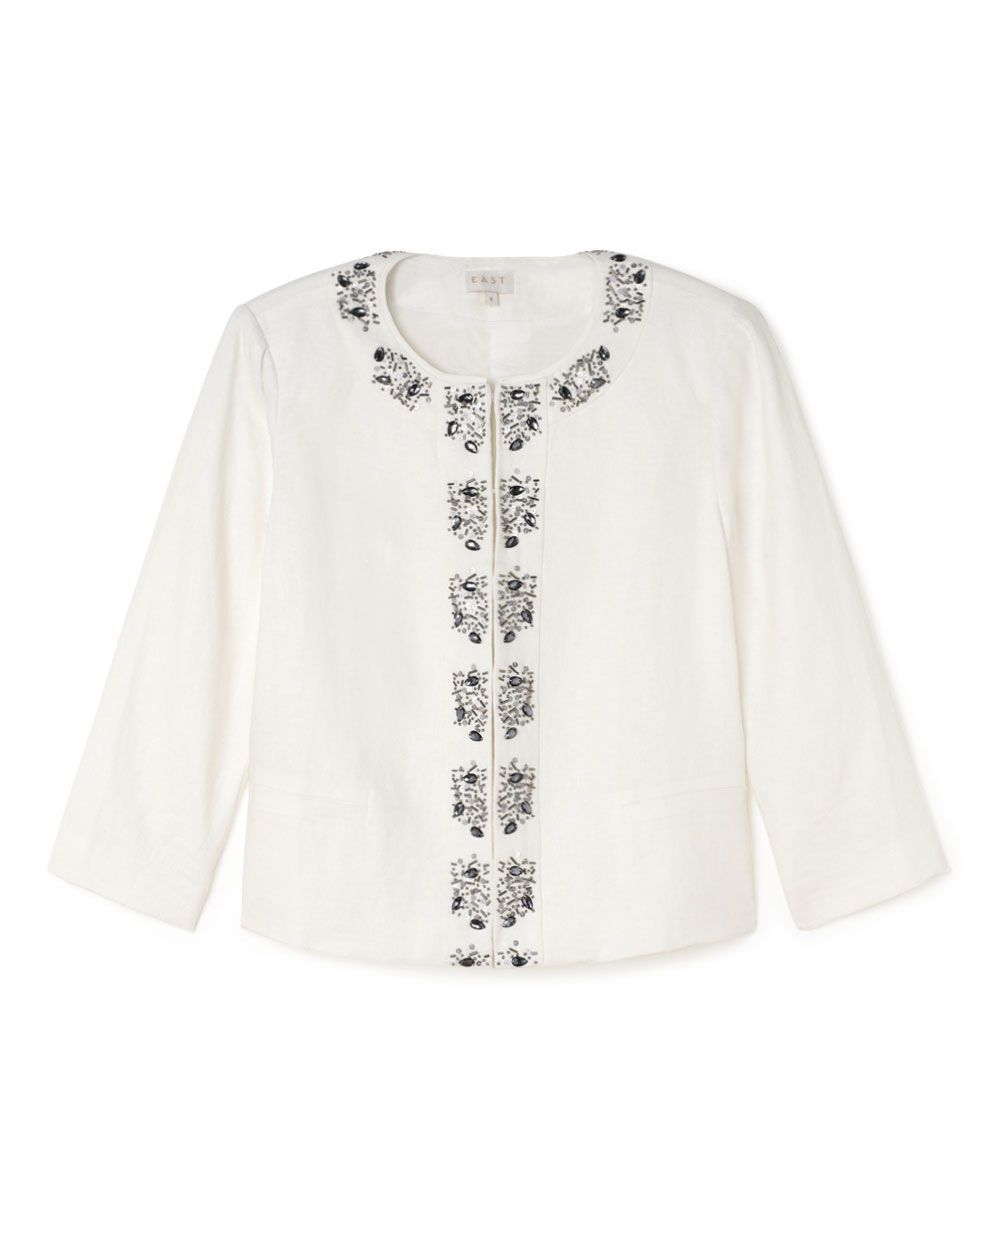 Victoire Jewelled Jacket, Cream - collar: round collar/collarless; style: boxy; predominant colour: ivory/cream; occasions: evening, occasion; length: standard; fit: straight cut (boxy); fibres: linen - 100%; sleeve length: 3/4 length; sleeve style: standard; collar break: high; pattern type: fabric; pattern size: light/subtle; pattern: patterned/print; texture group: woven light midweight; embellishment: embroidered; season: s/s 2015; wardrobe: event; embellishment location: bust